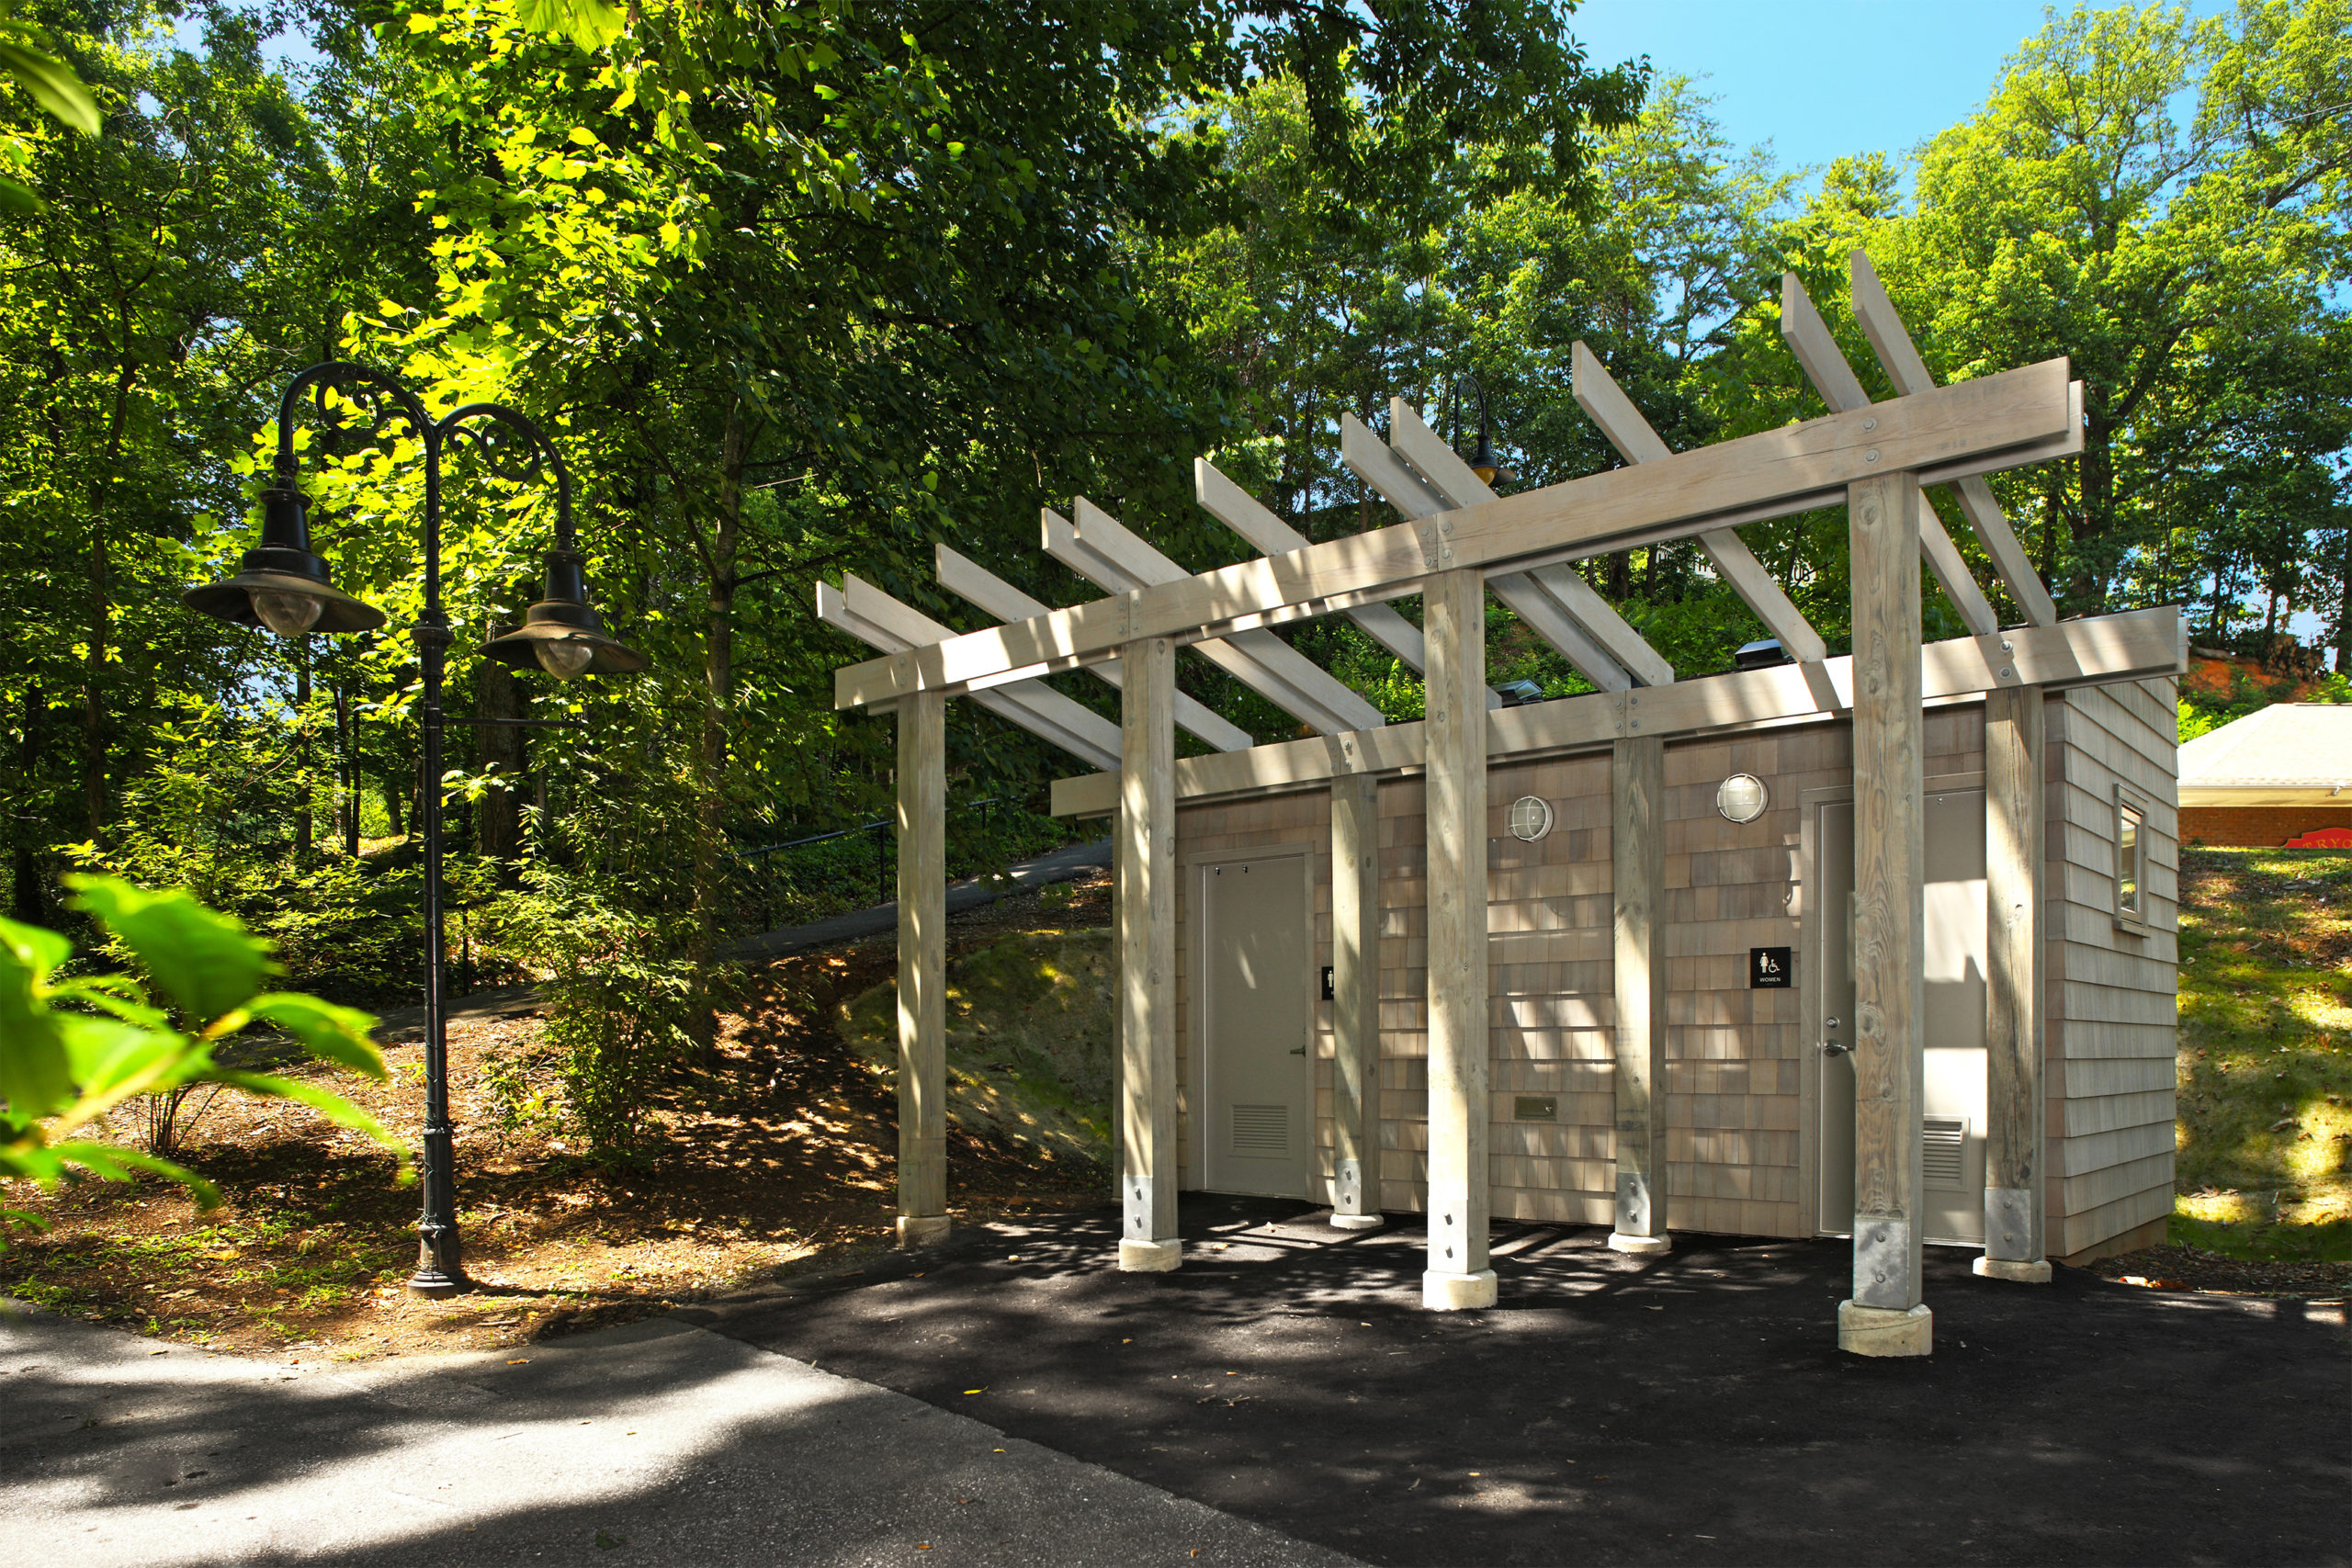 Entrance to the structure with pergola detail similar to existing park structures.